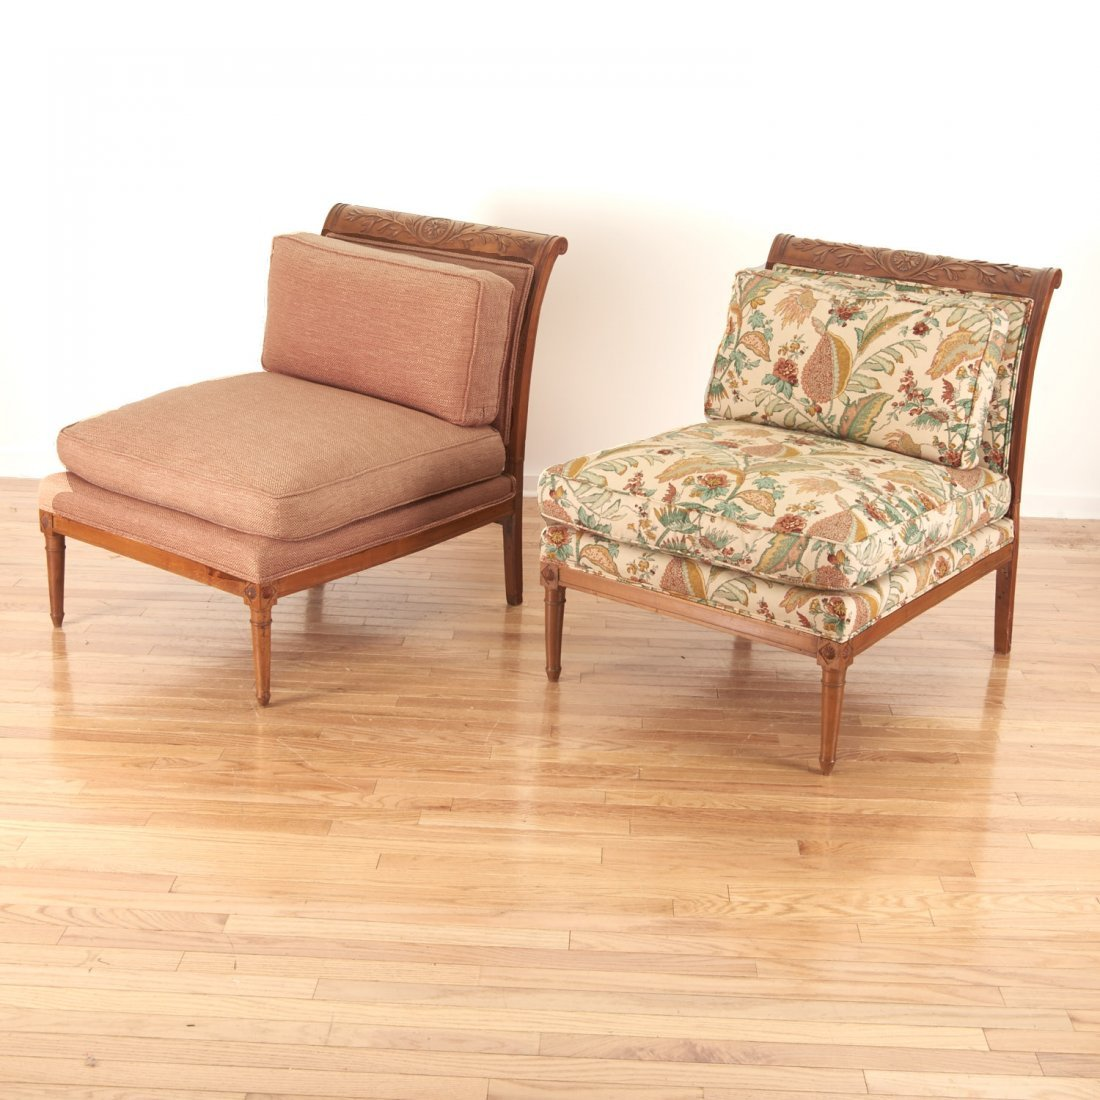 Pair Neo-Directoire upholstered walnut chauffeuse - 3